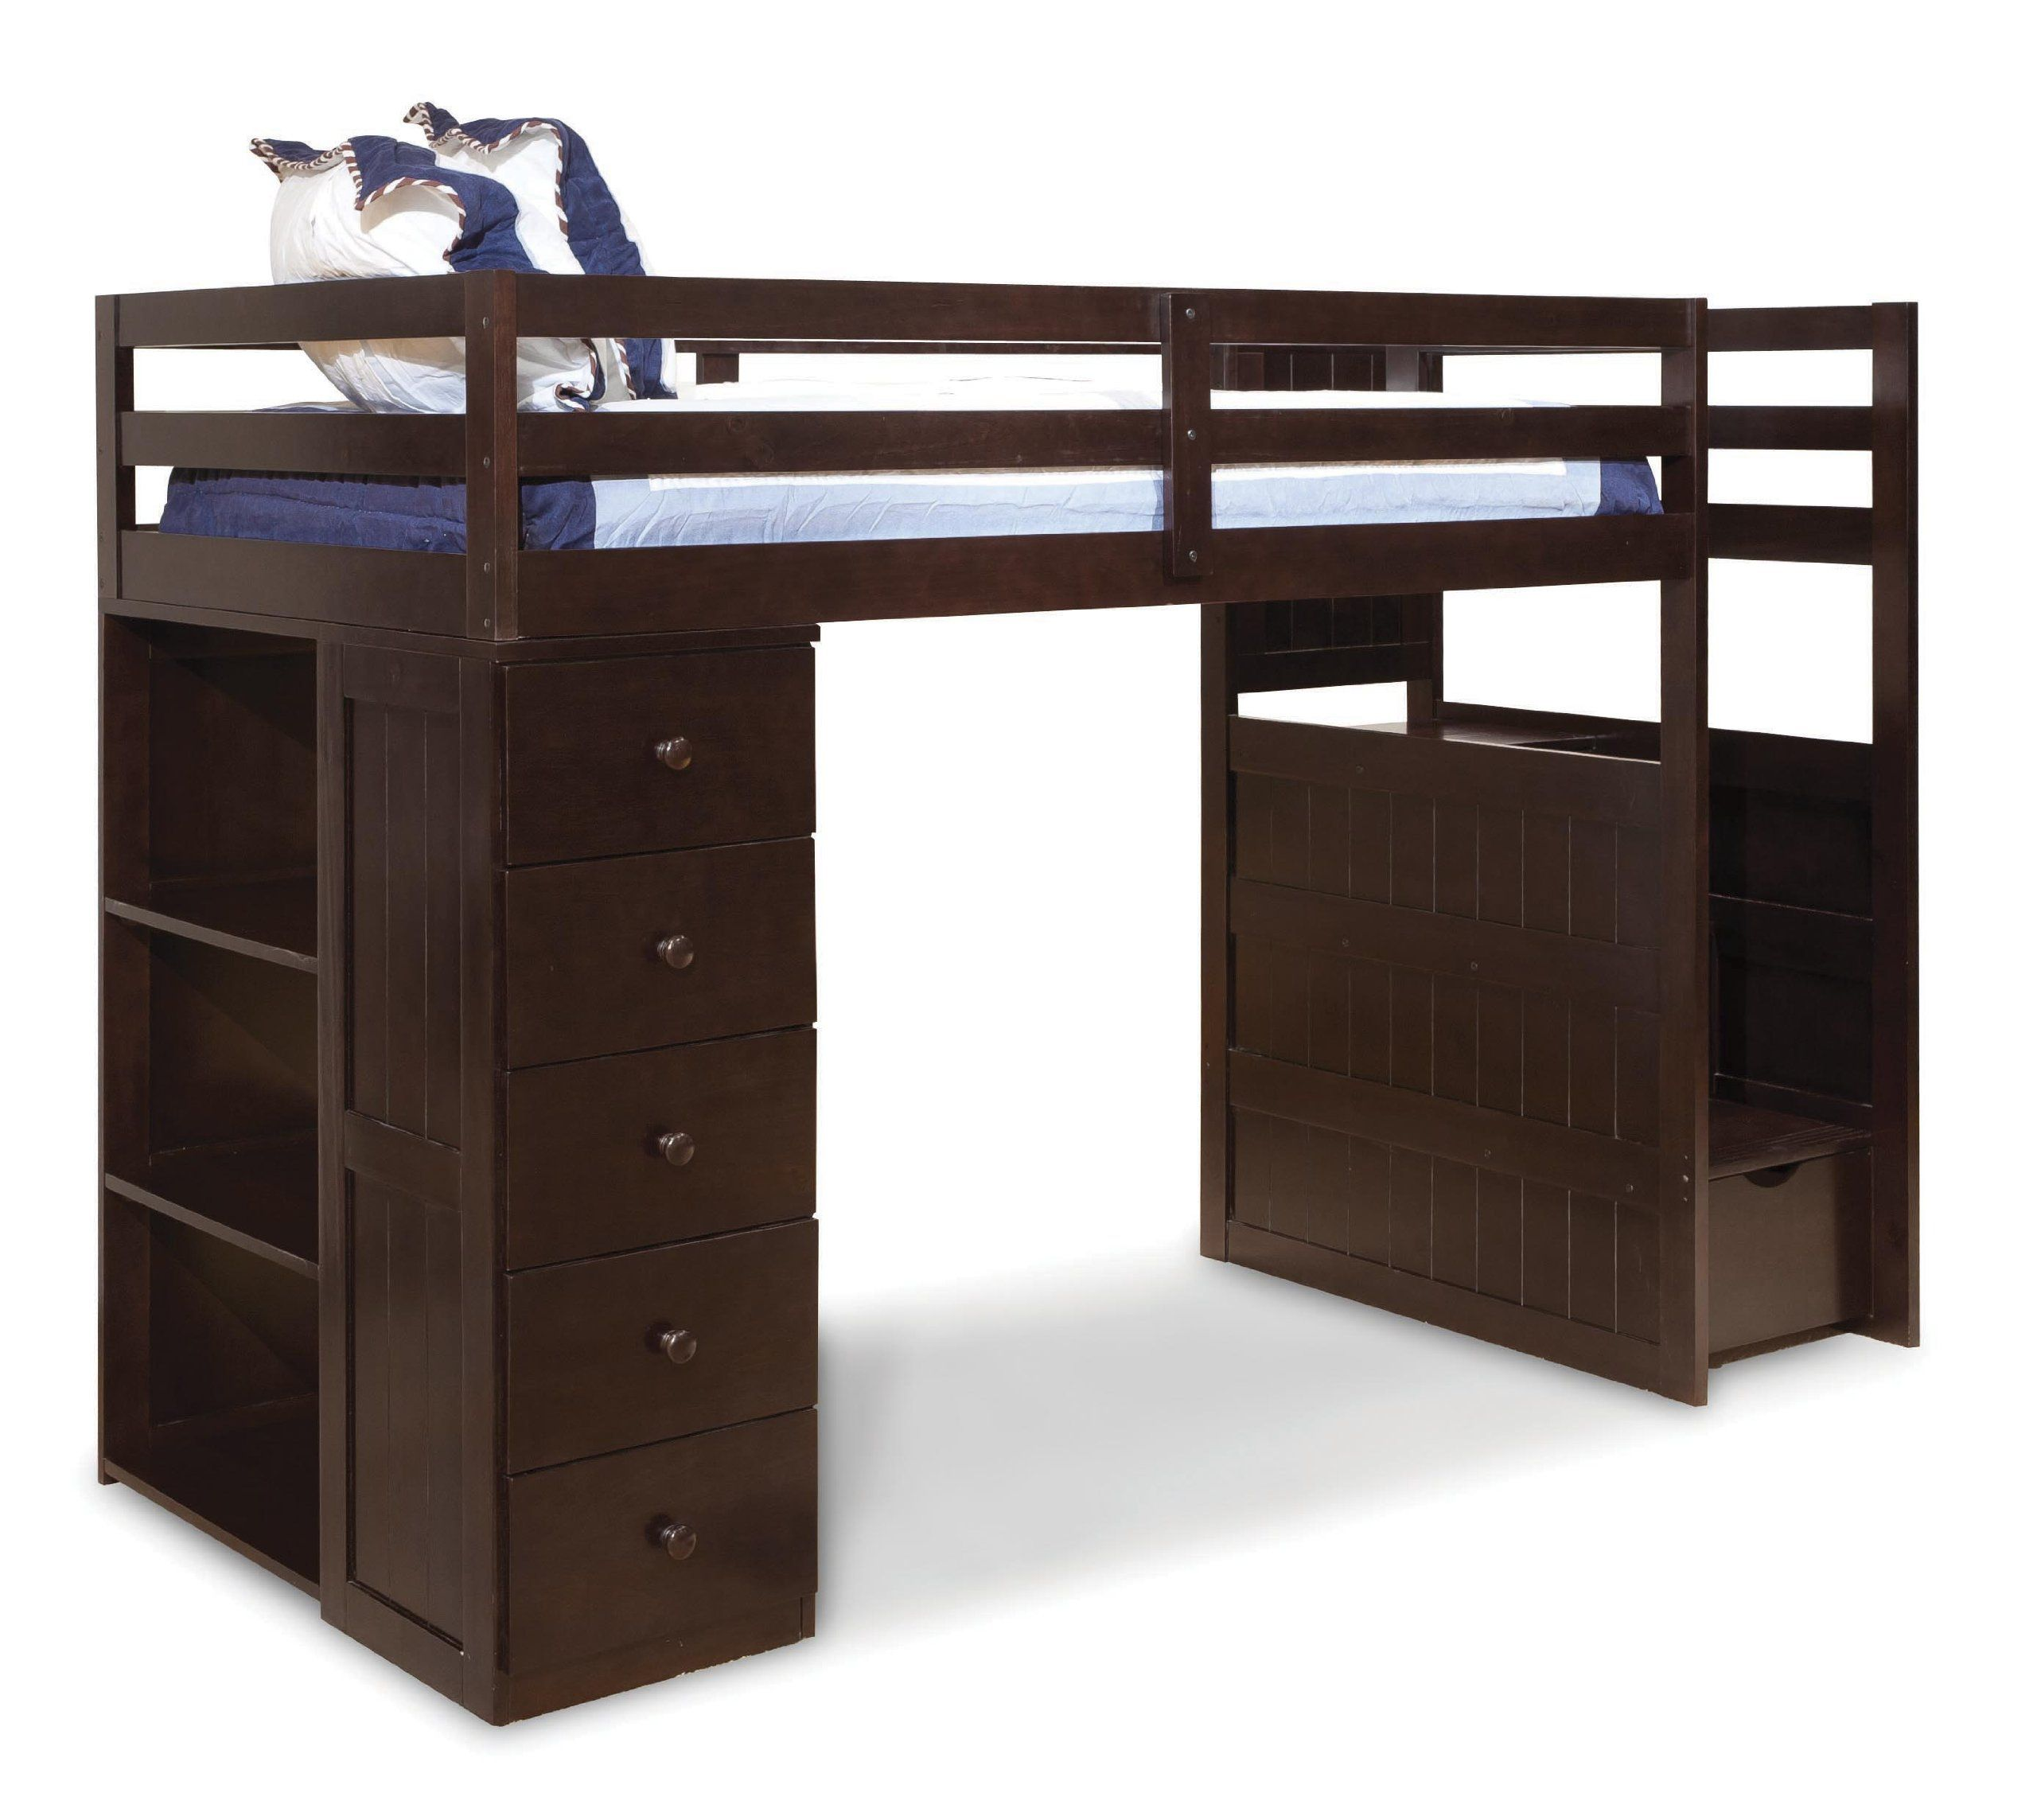 plans beds drawers comwp http stairs kidsfurniturenmore full storage bunk bed with over contentuploadstwin and